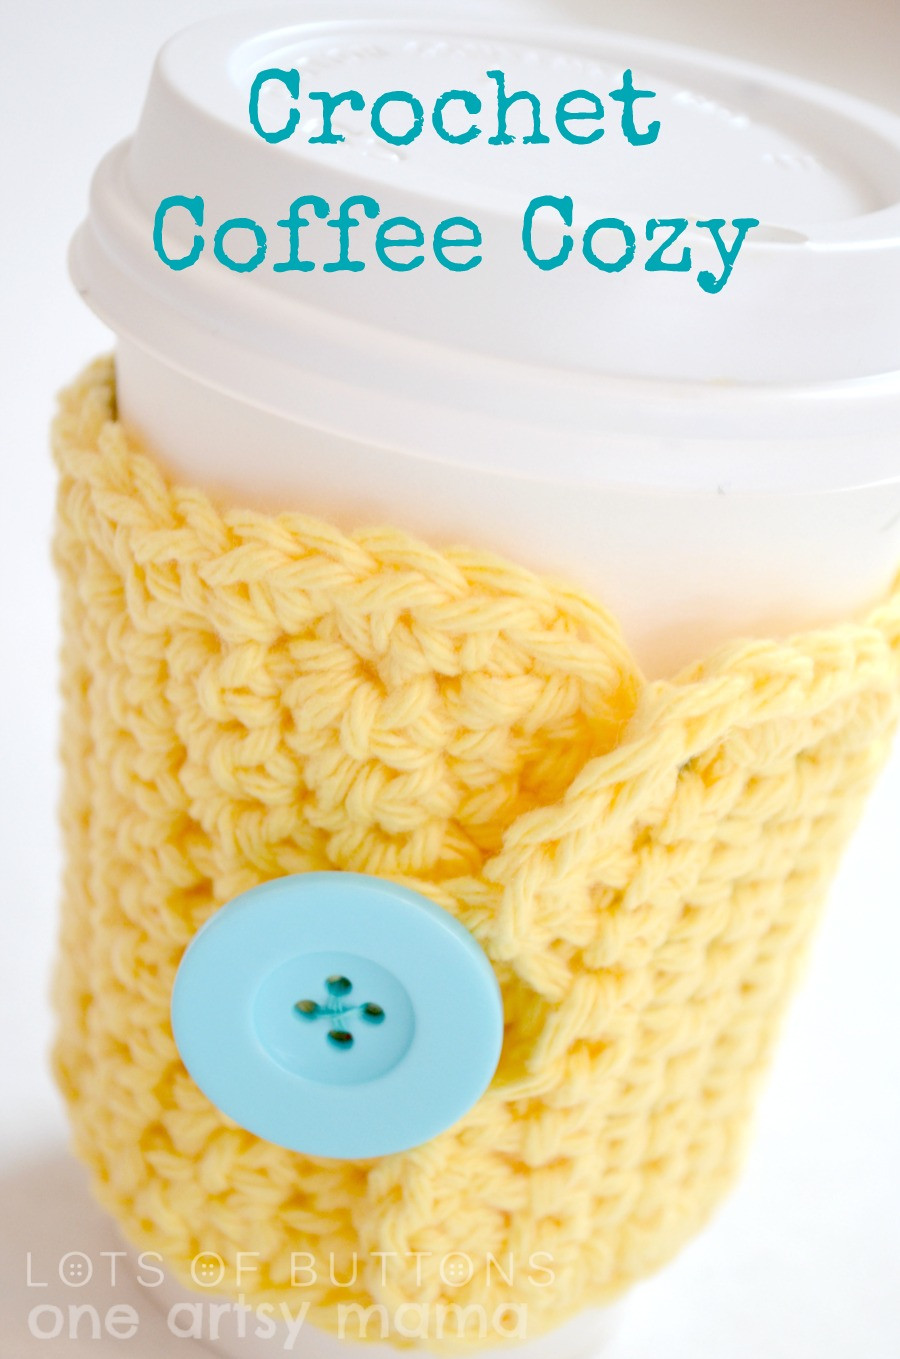 Crochet Coffee Cup Cozy Lovely Crochet Coffee Cozy Amy Latta Creations Of Crochet Coffee Cup Cozy Fresh Creativity Awaits Crochet Coffee Cozy Patterns Stitch